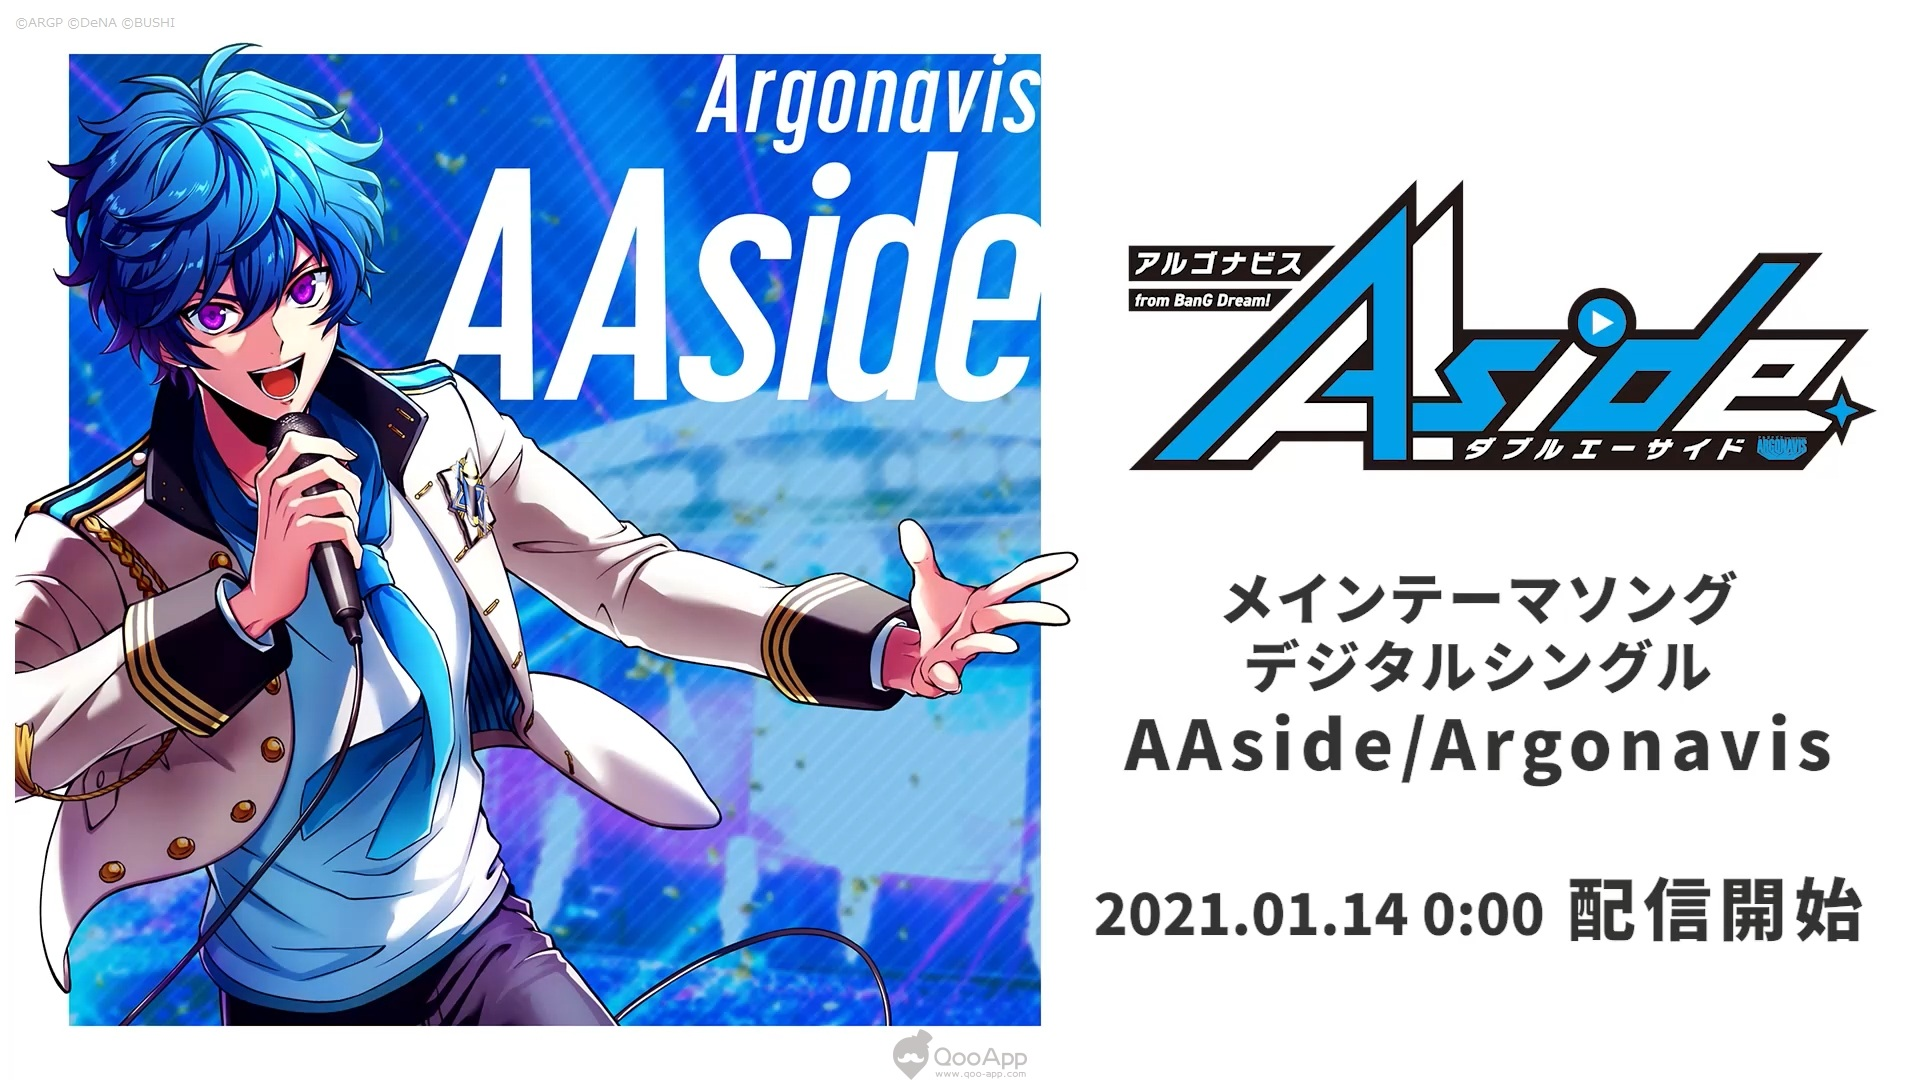 ARGONAVIS from BanG Dream! AAside